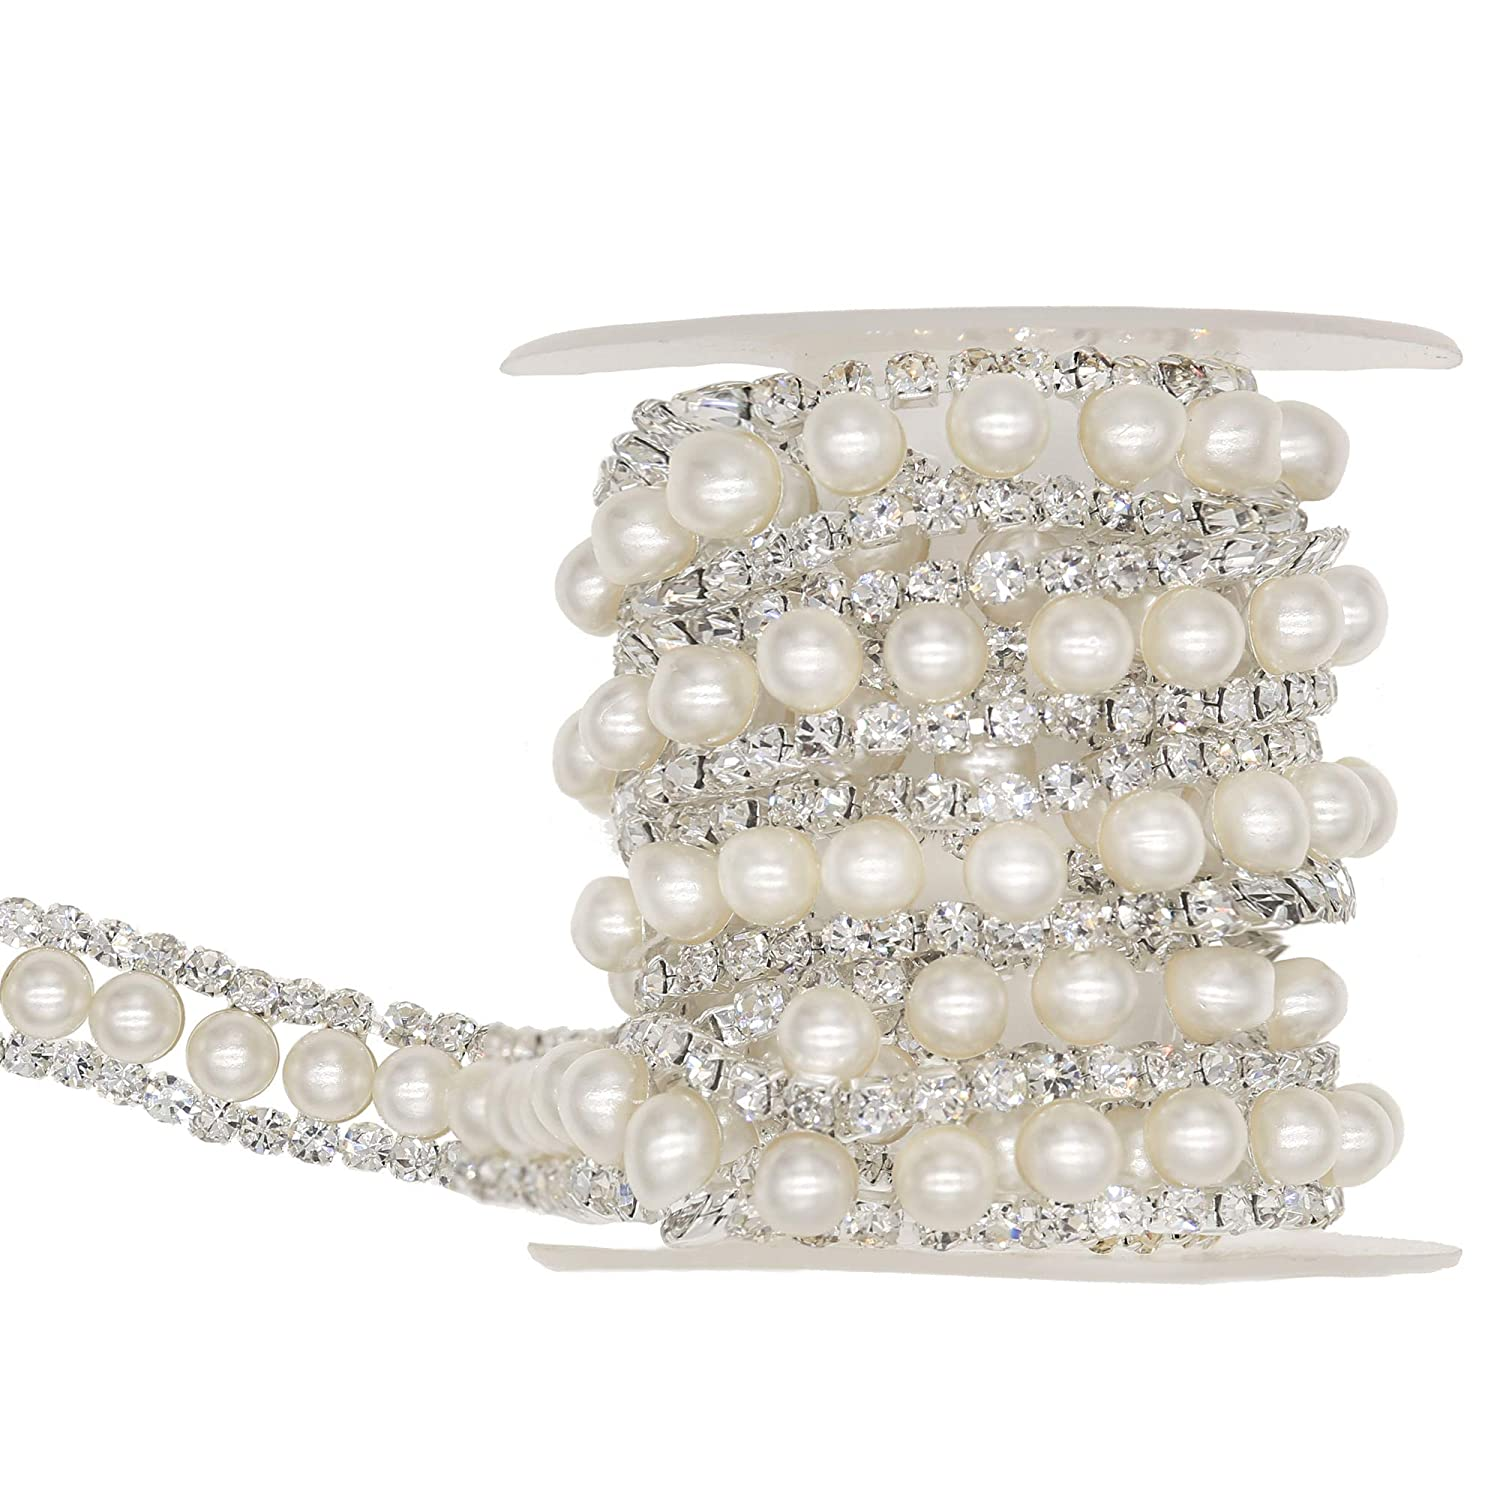 XIAOTAI Rhinestone Trims 1 Yard 2 Rows Crystal Chain Banding Diamond Inlaid White Pearl Beaded Rhinestones for Crafts Clothing and Bridal Embellishments Exquisite Wedding and Easter Ideas